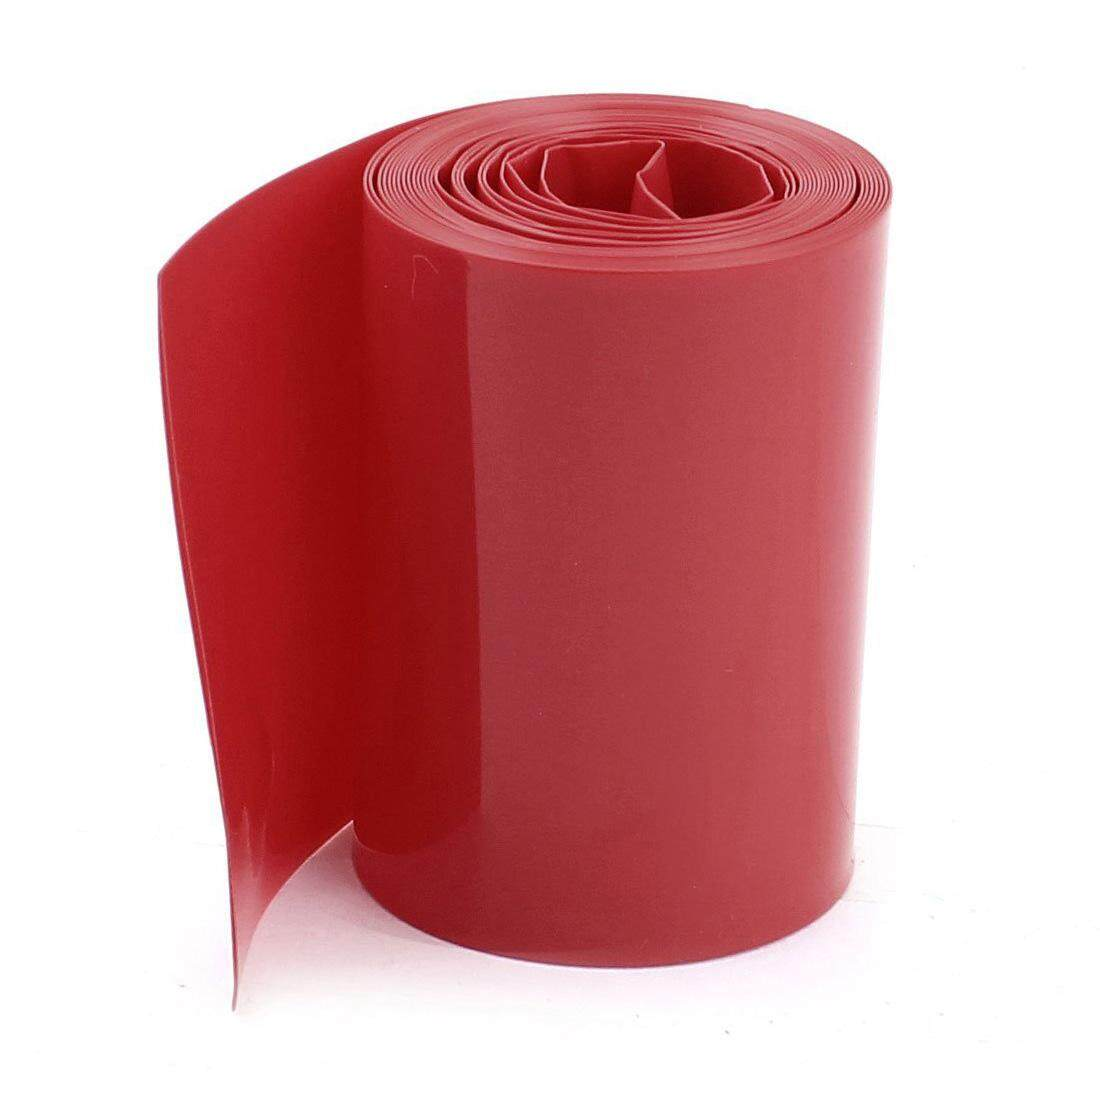 2m 50mm Width Pvc Heat Shrink Wrap Tube Red For 2 X 18650 Battery Flash Deal By Starnet Store.